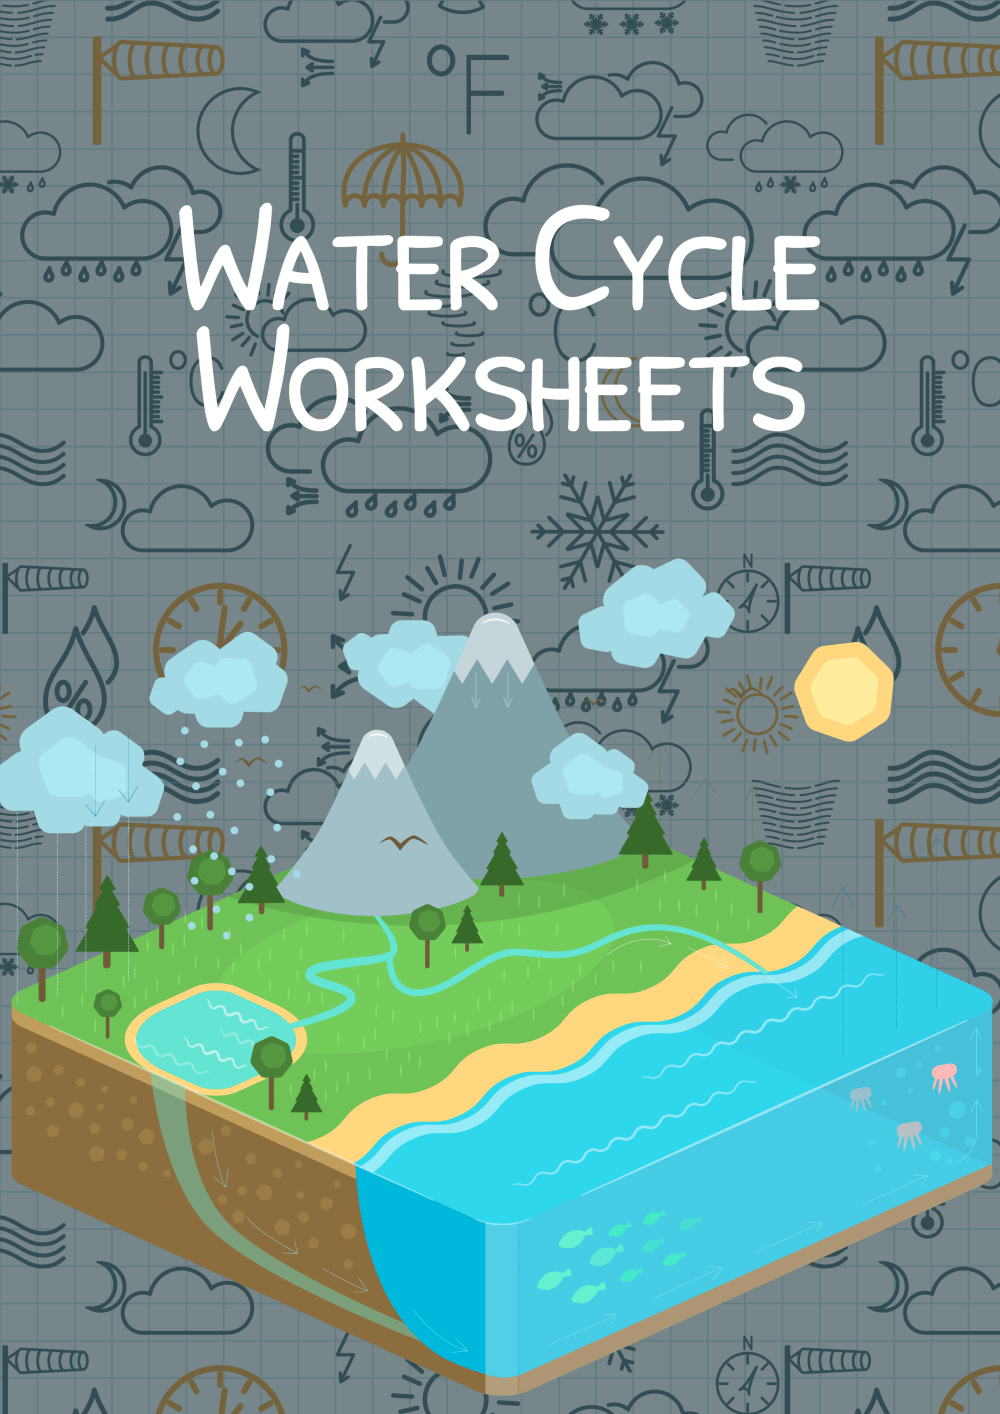 medium resolution of The Water Cycle Worksheet for Kids   Water Cycle Summary